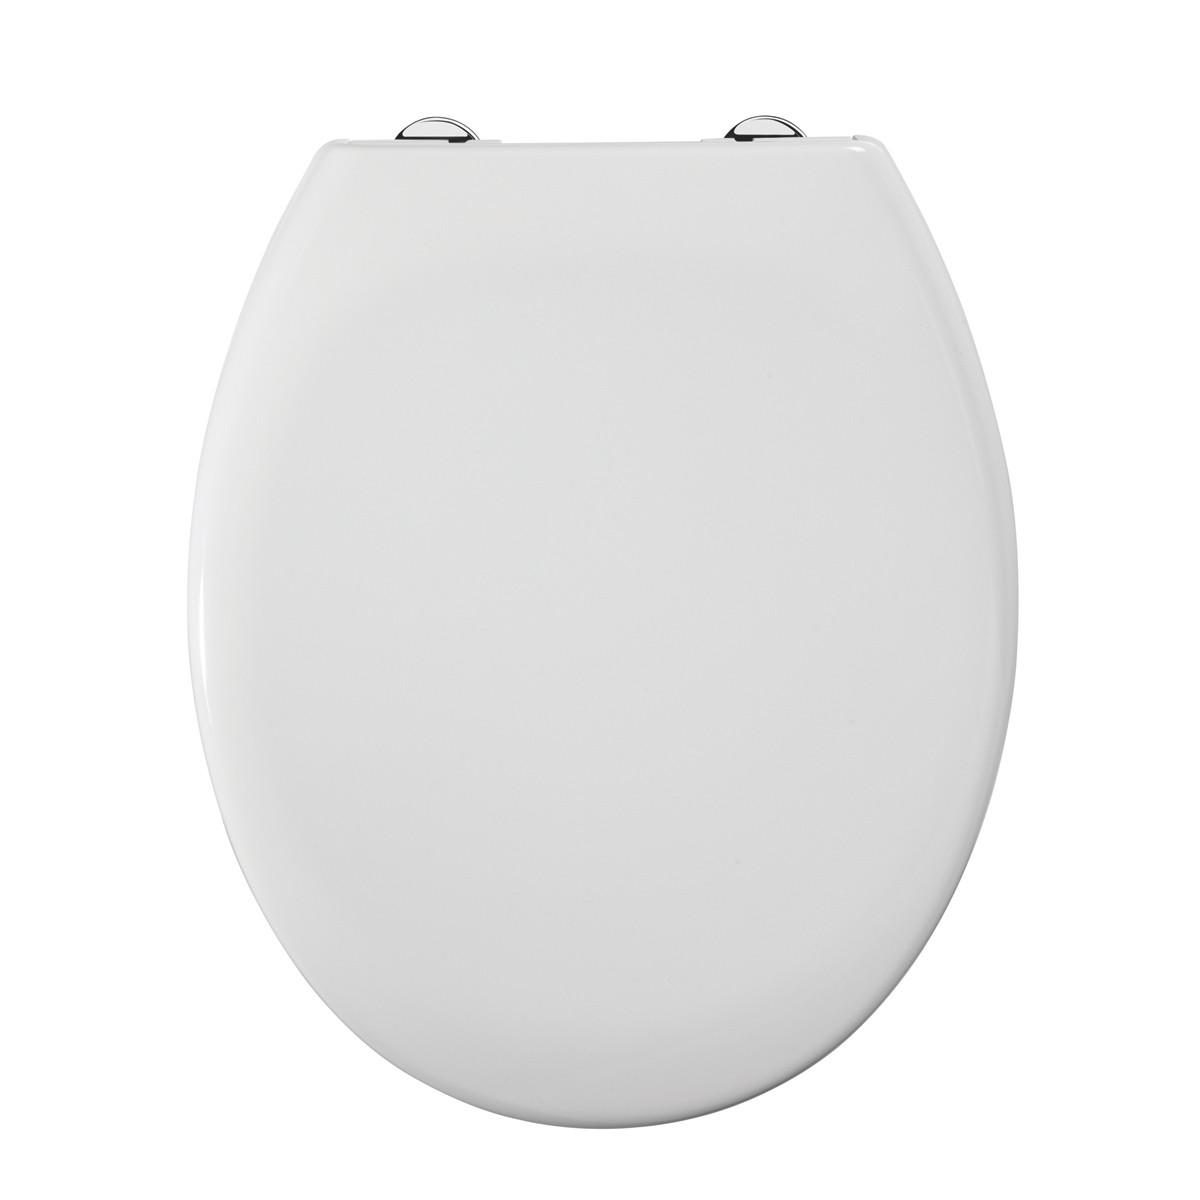 Standard White NEUTRON Toilet Seat Soft Close Quick Release Easy Clean Hinges